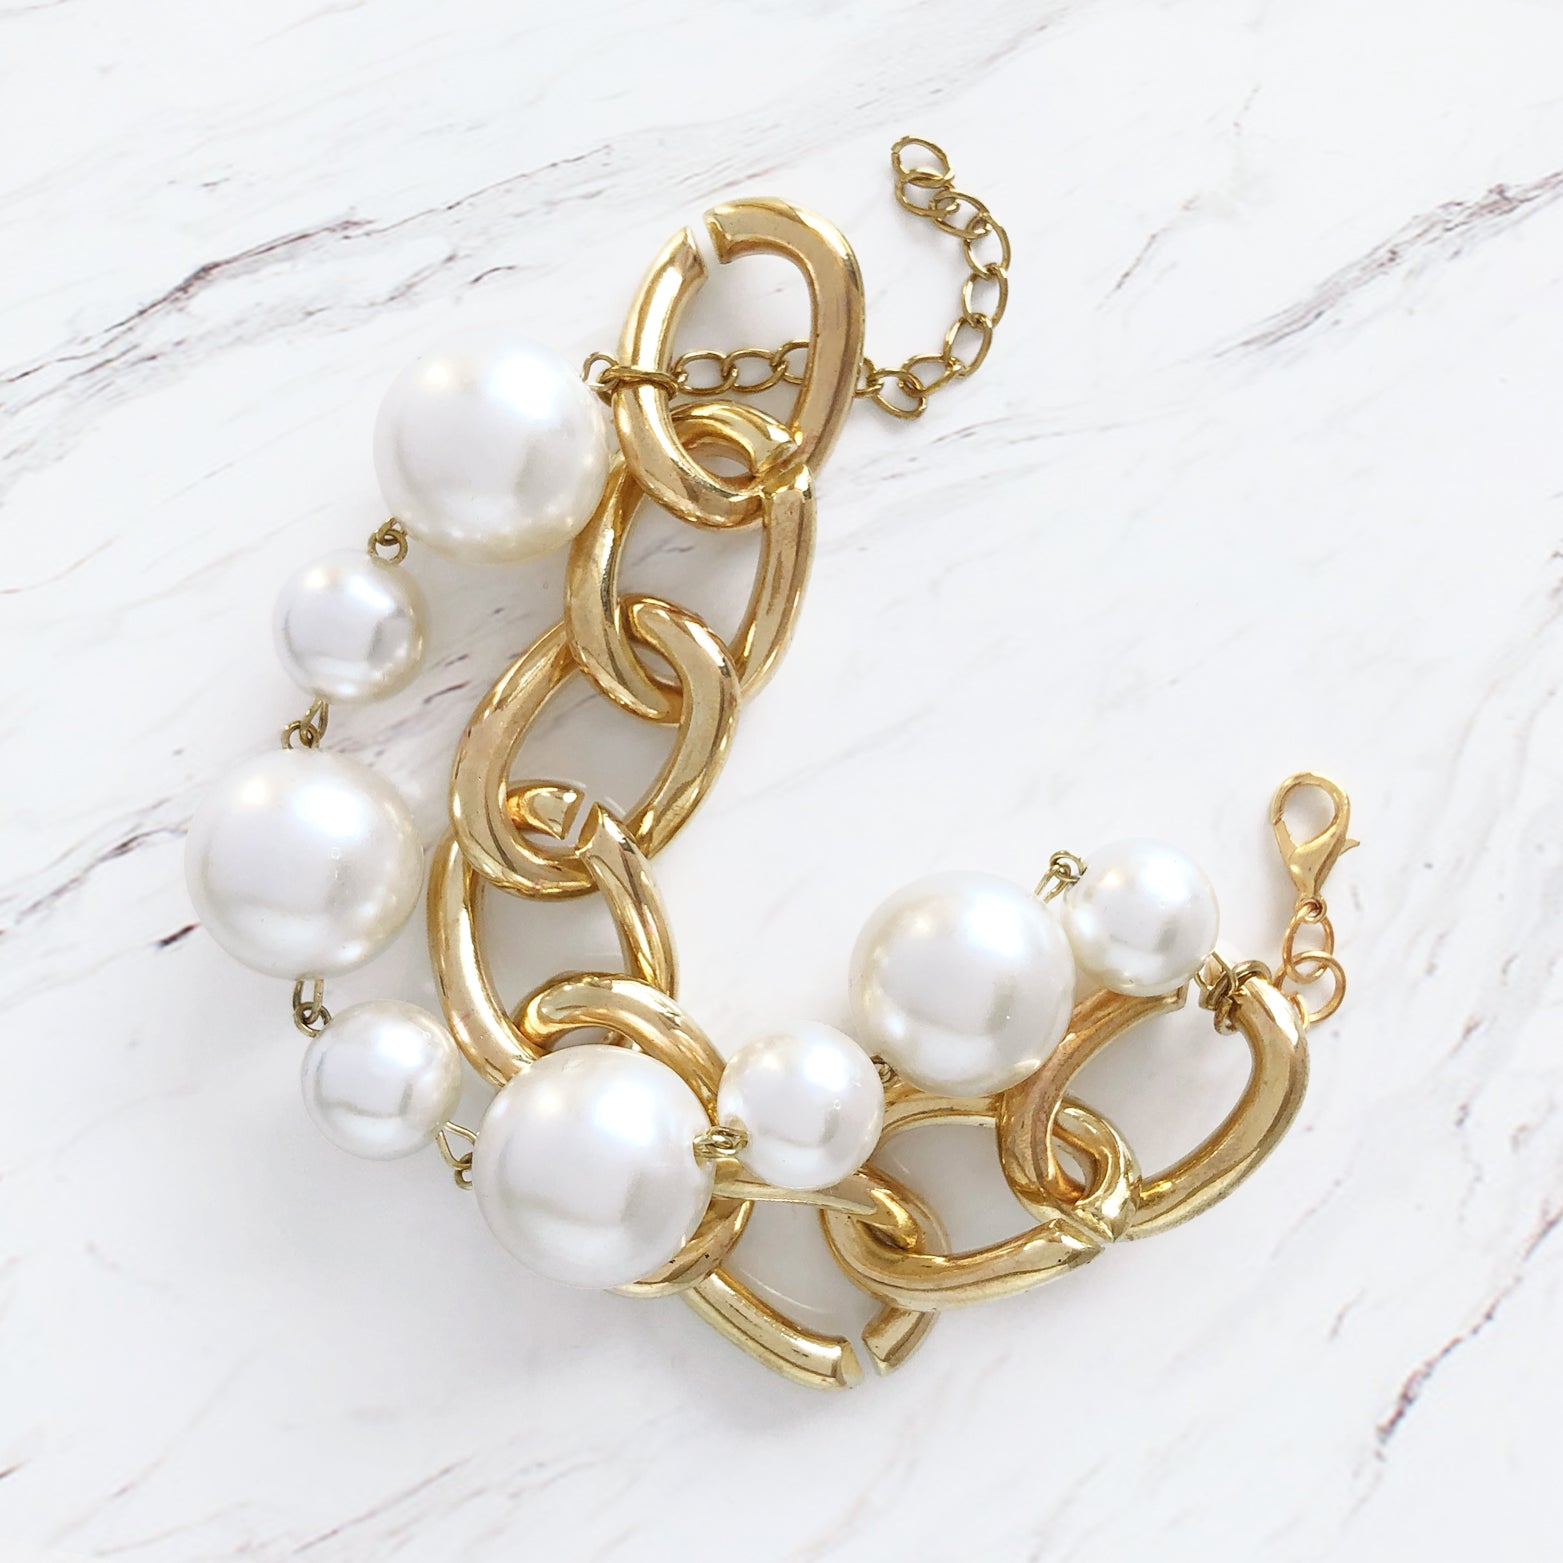 Bold Chain & Pearls Bracelet